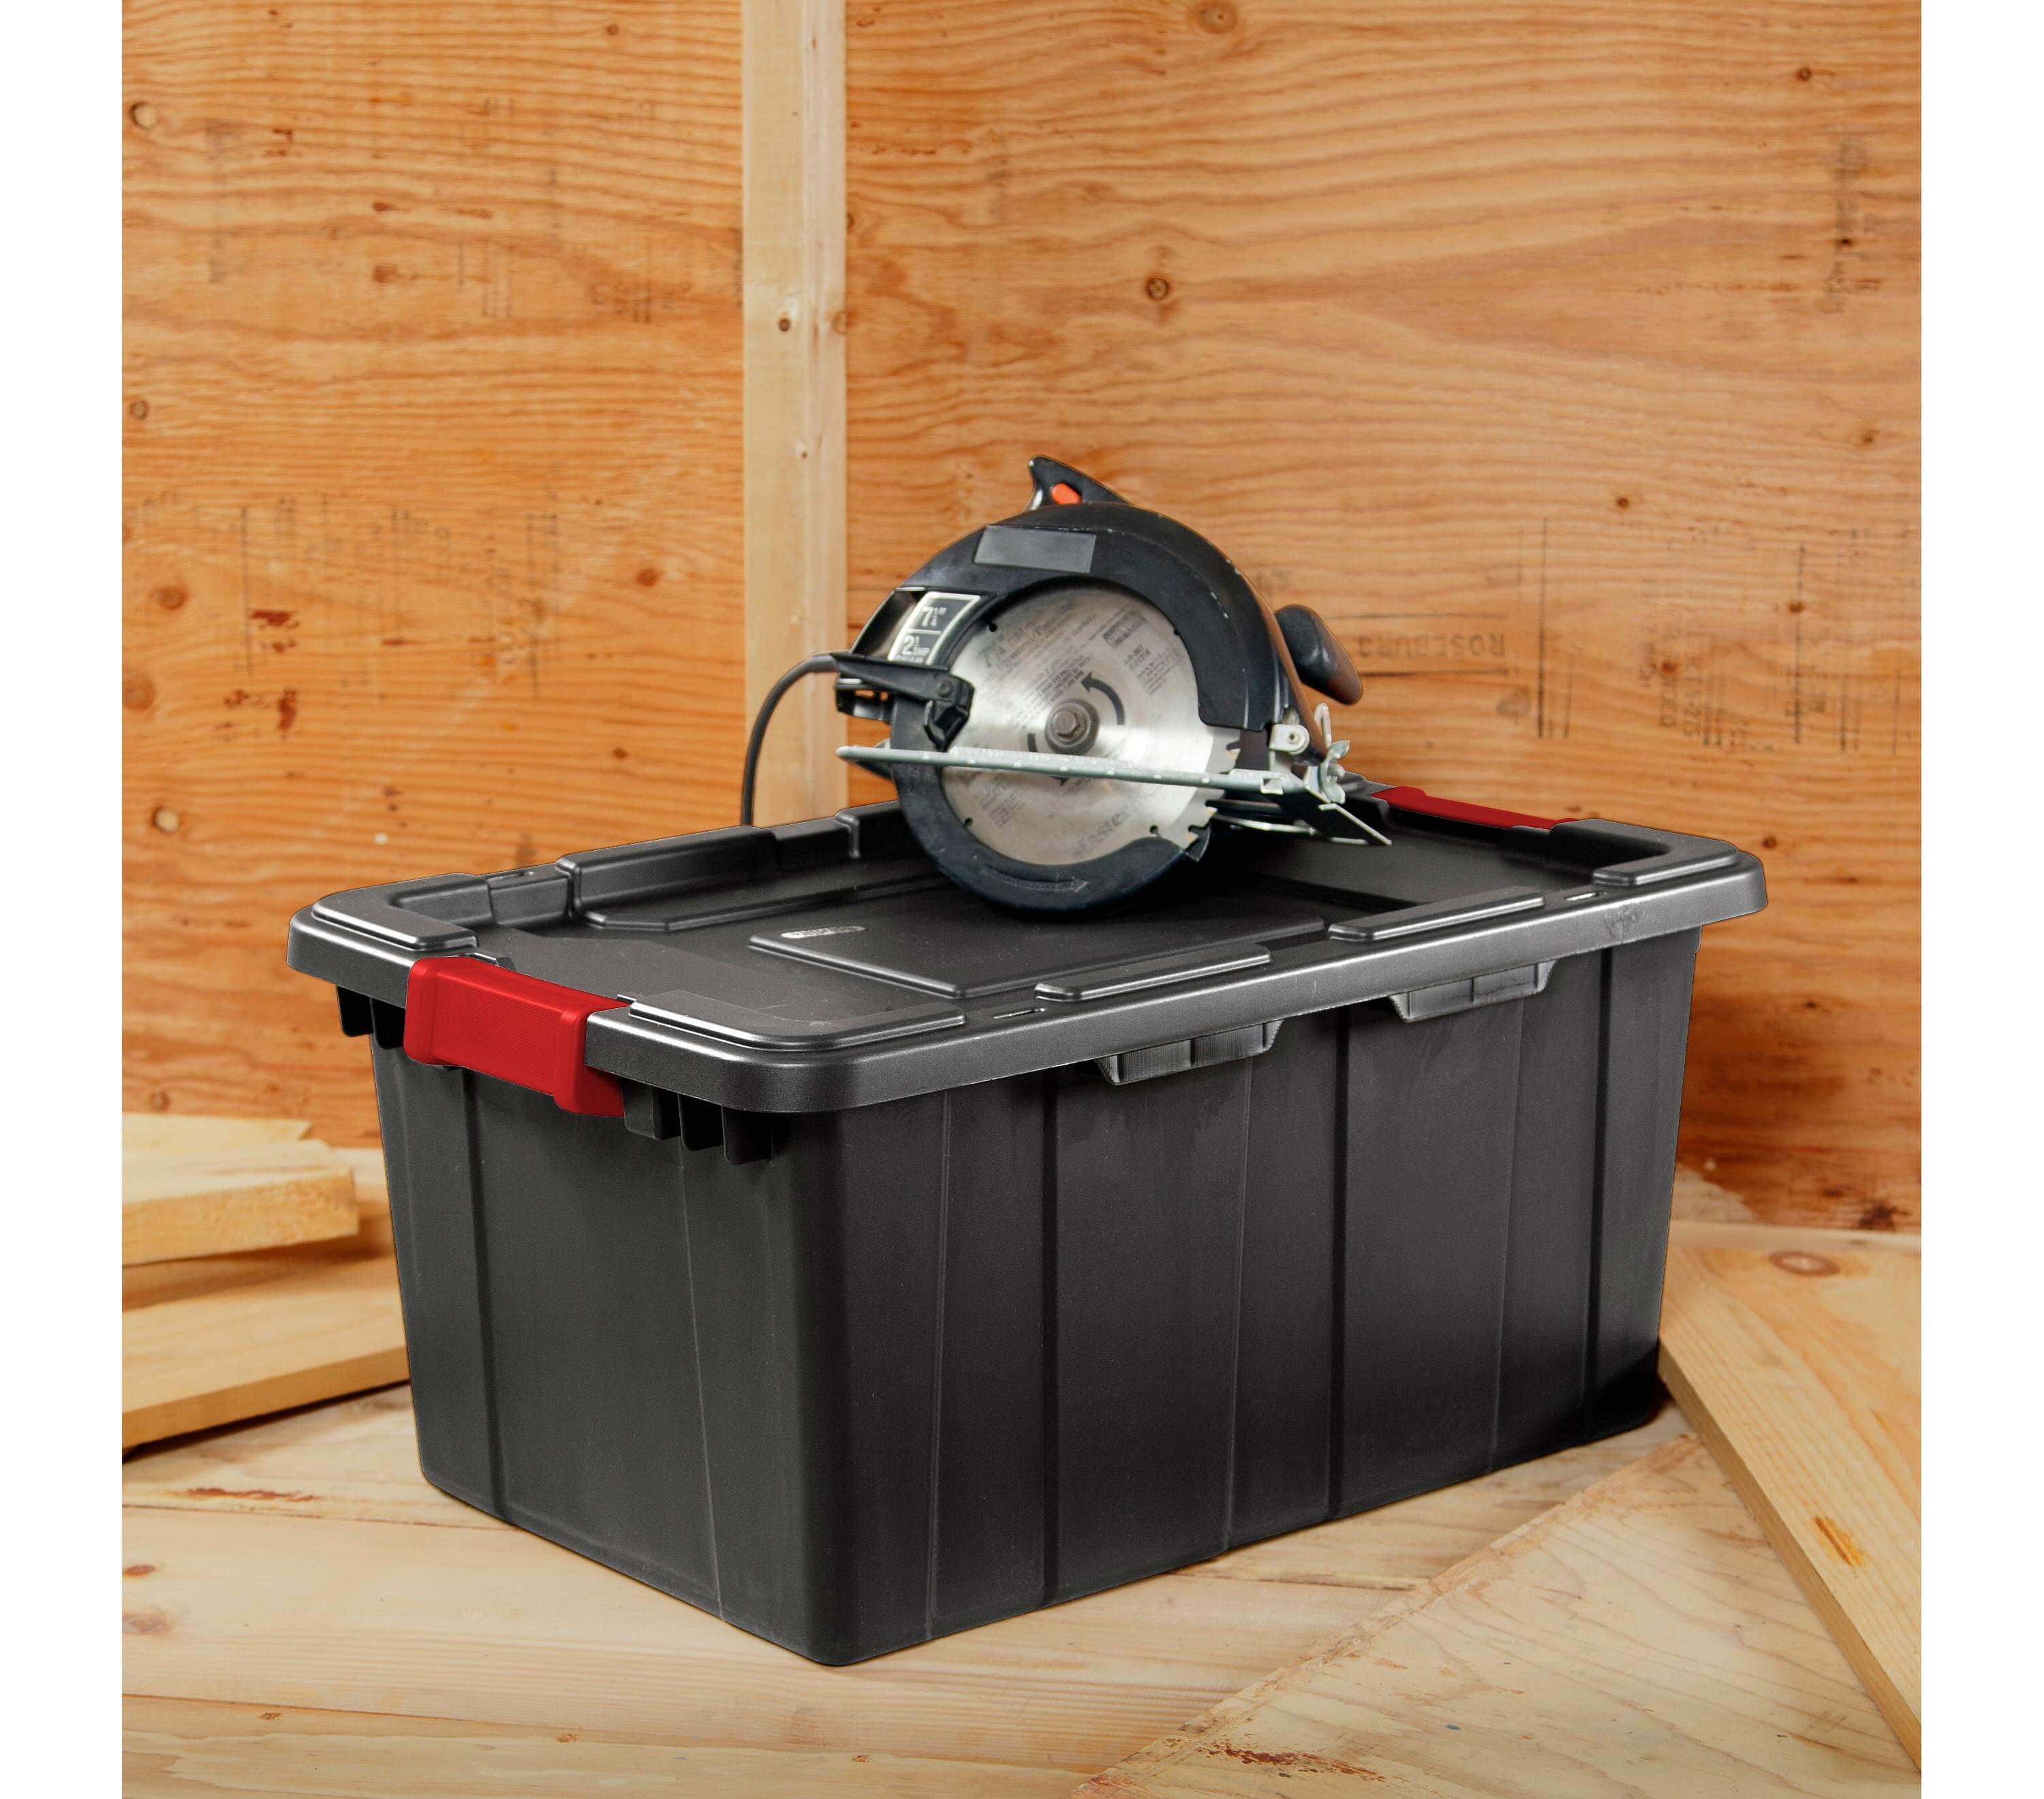 Sterilite® 60 Qt Industrial Utility Storage Tote - Black with Red Latch, Target YMMV B&M availability varies, but good availability nationwide @$4.98